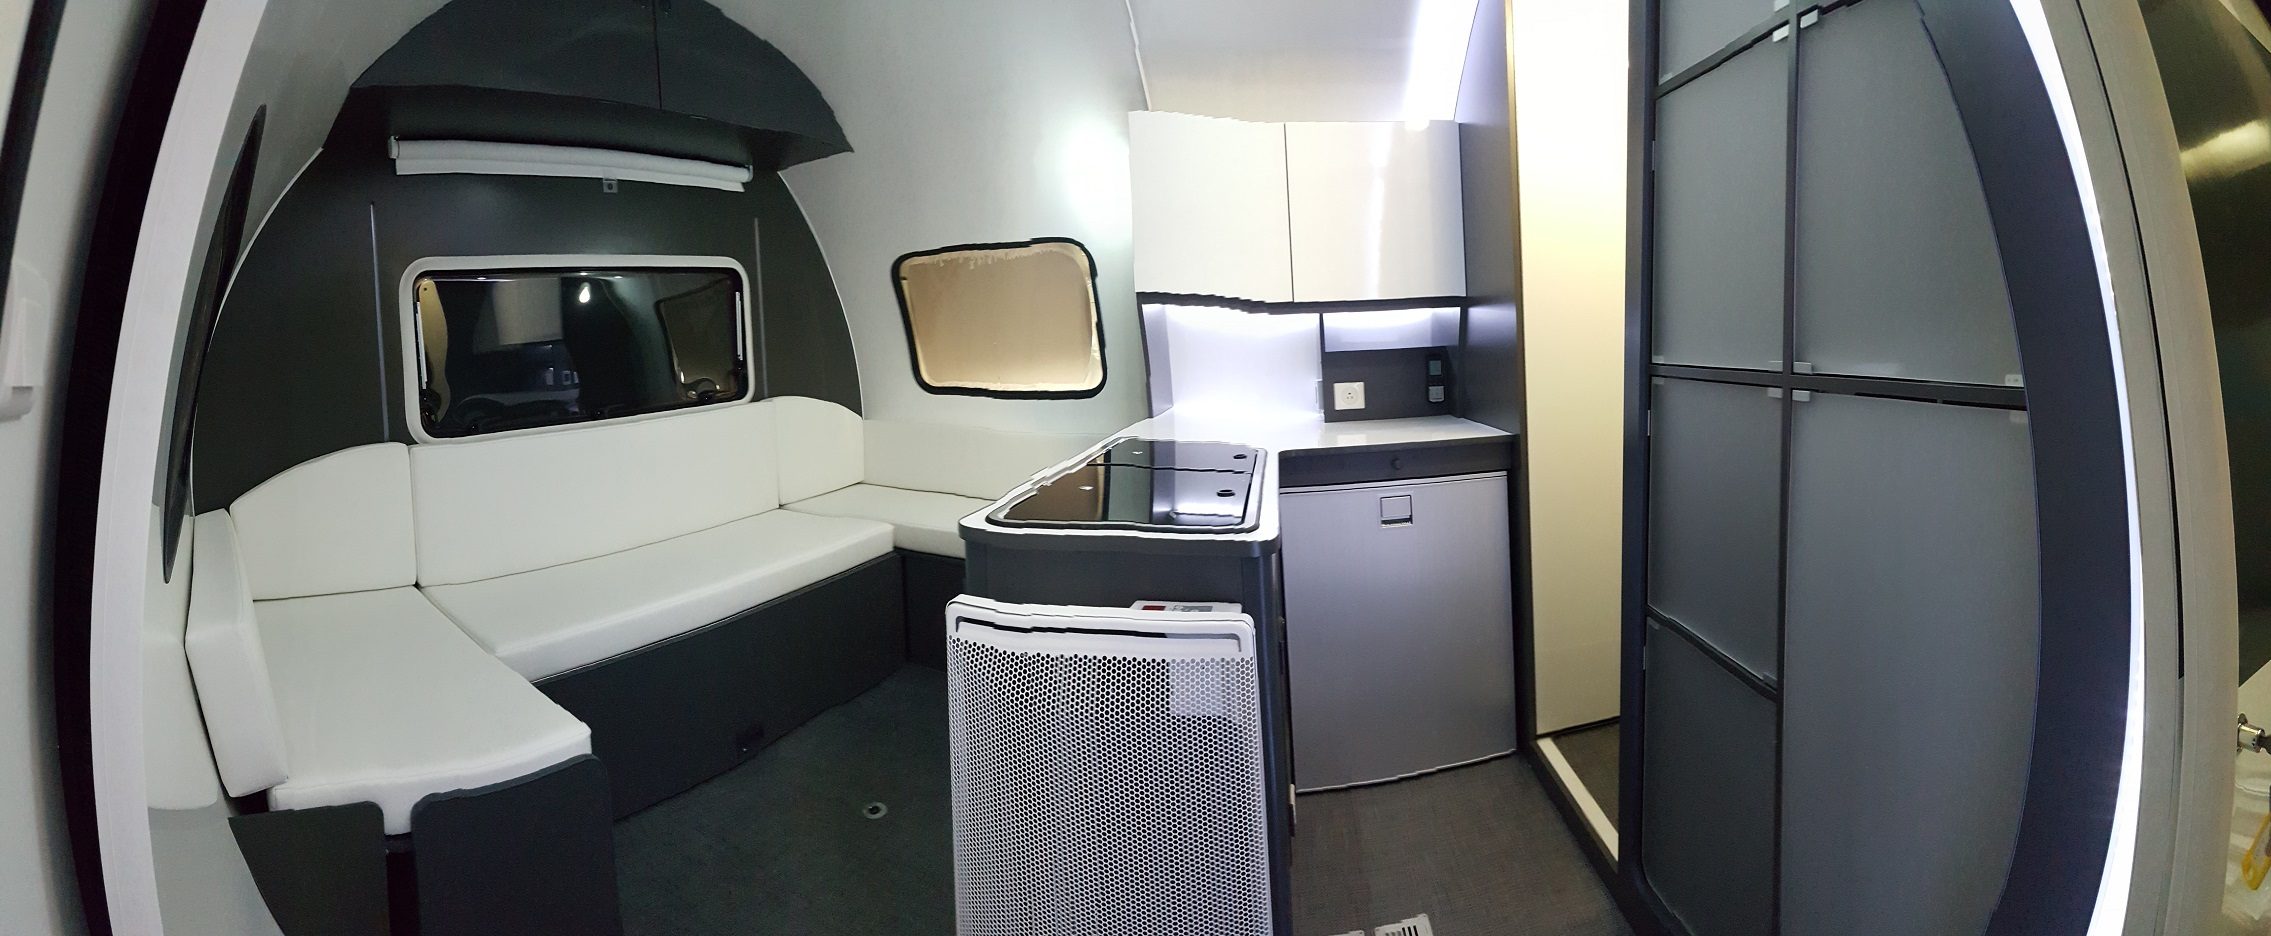 3X lounge and kitchen